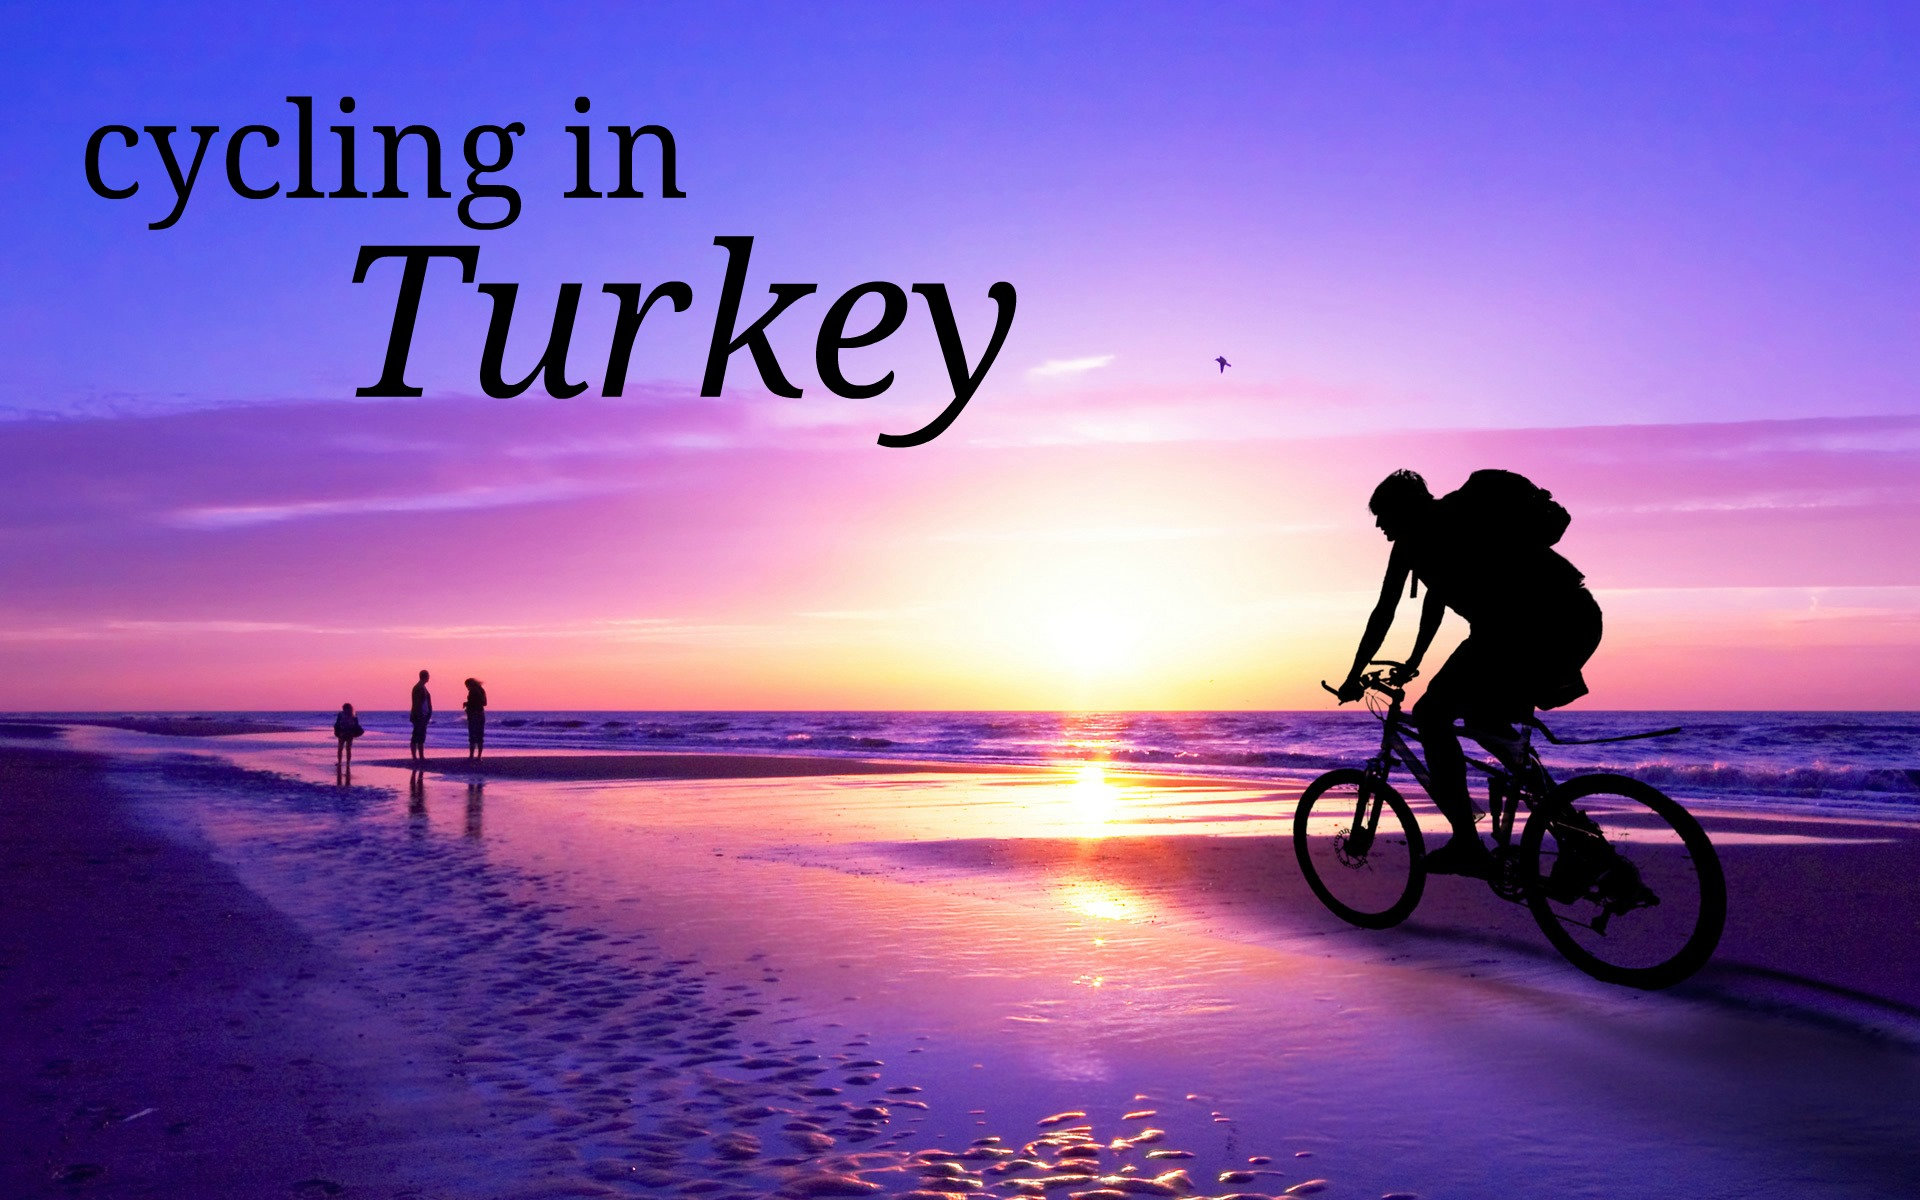 Pedal power: cycling in Turkey